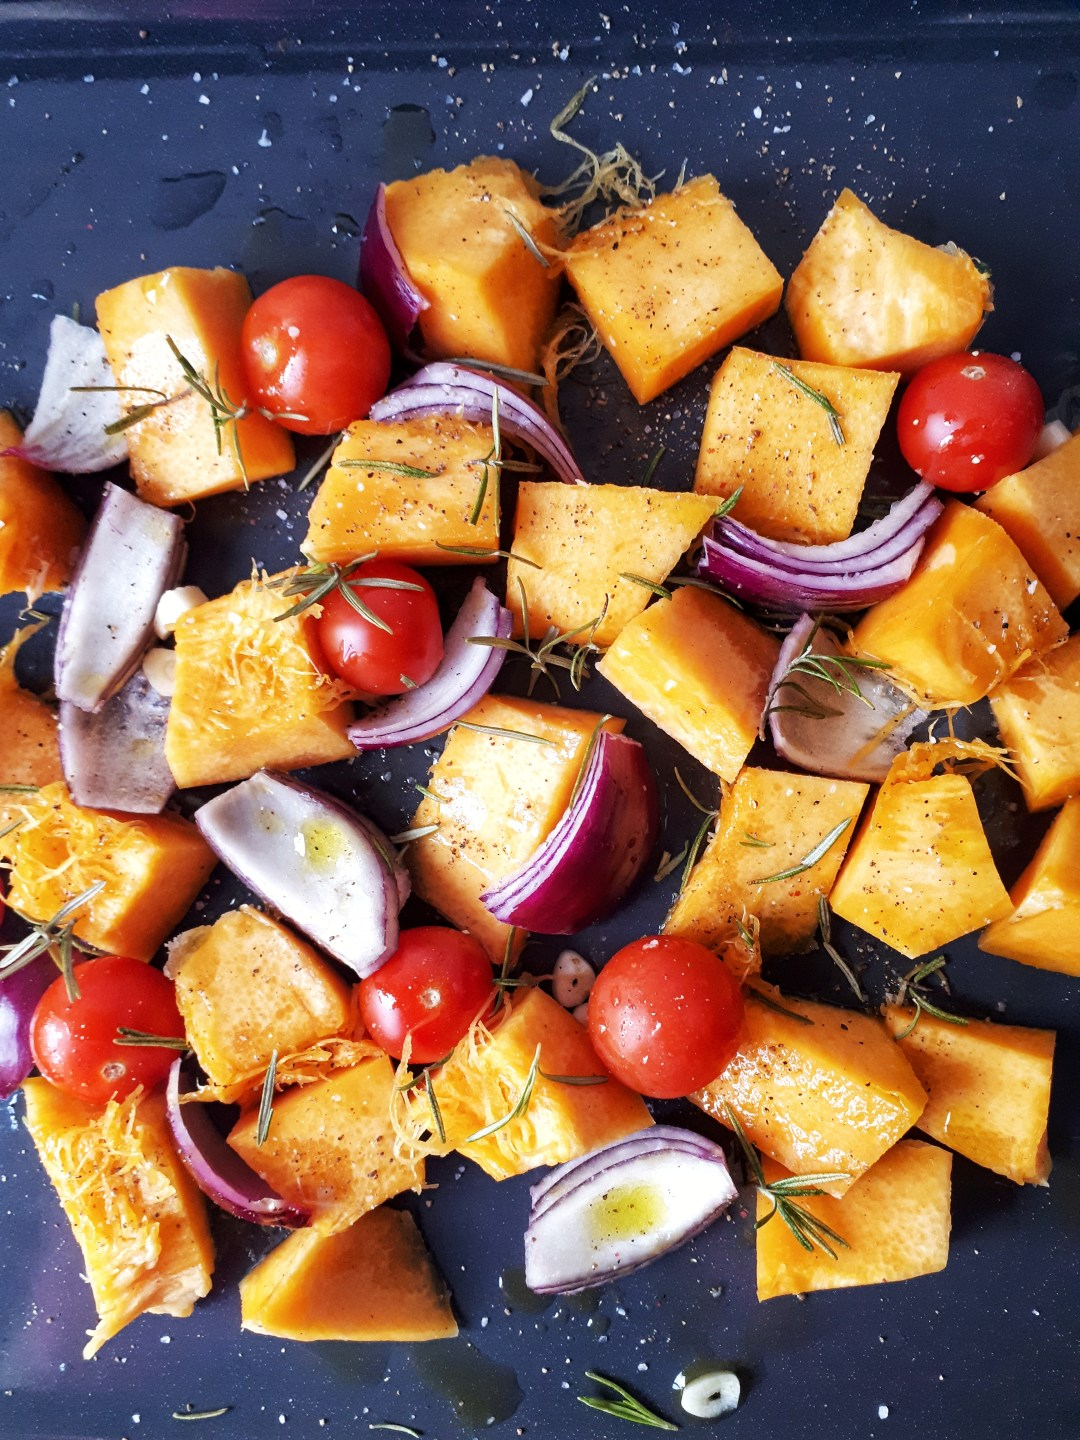 Roasted pumpkin is a simple, easy and versatile recipe that makes an amazing side dish.  This dish has a wonderful balance of pumpkin flavor with the rosemary and cherry tomatoes. This can be a paleo, keto and vegan recipe.